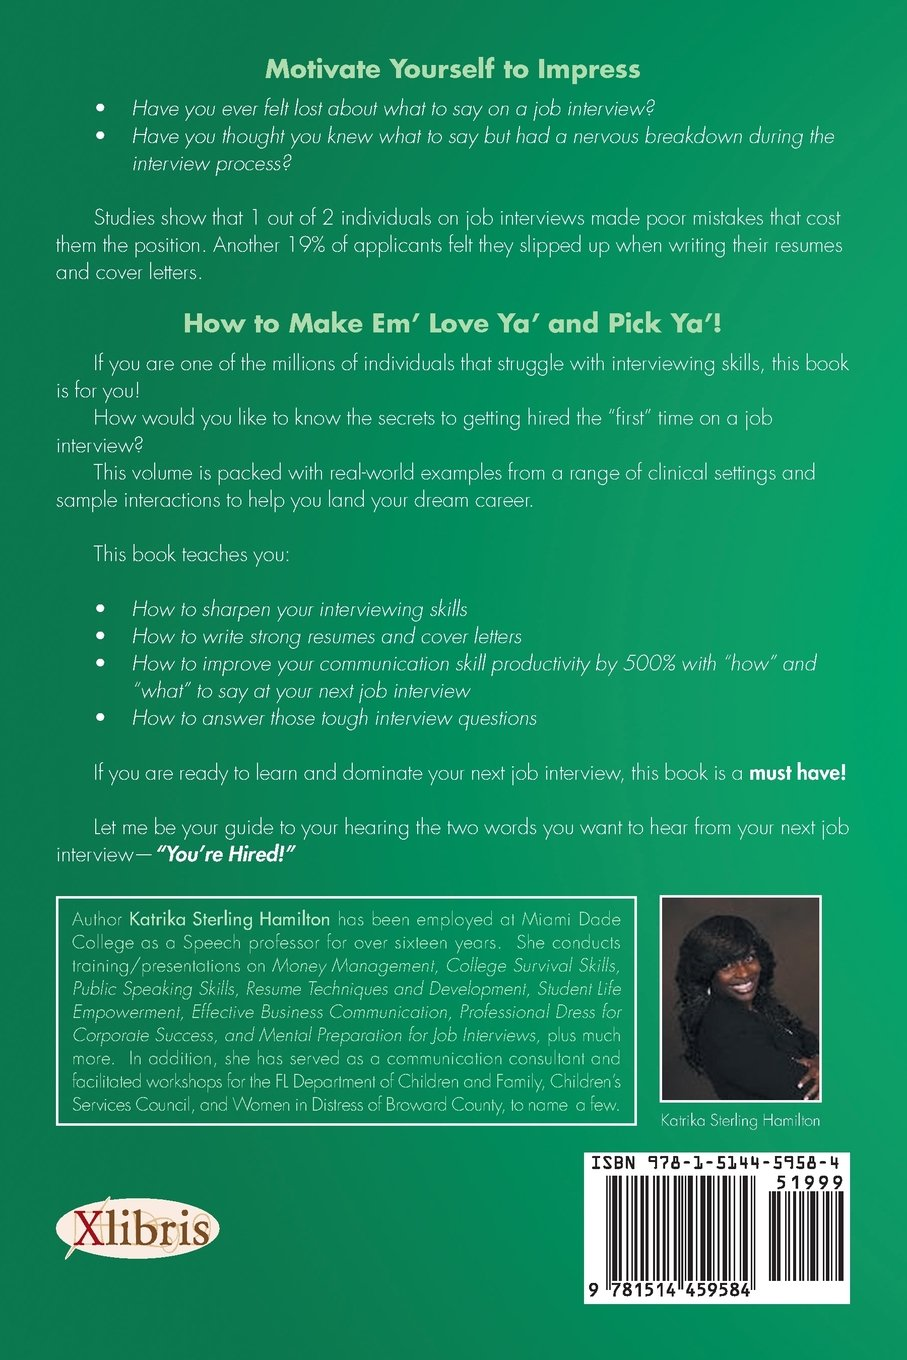 motivate yourself to impress how to make em love ya and pick ya motivate yourself to impress how to make em love ya and pick ya college students guide to getting hired katrika sterling hamilton 9781514459584